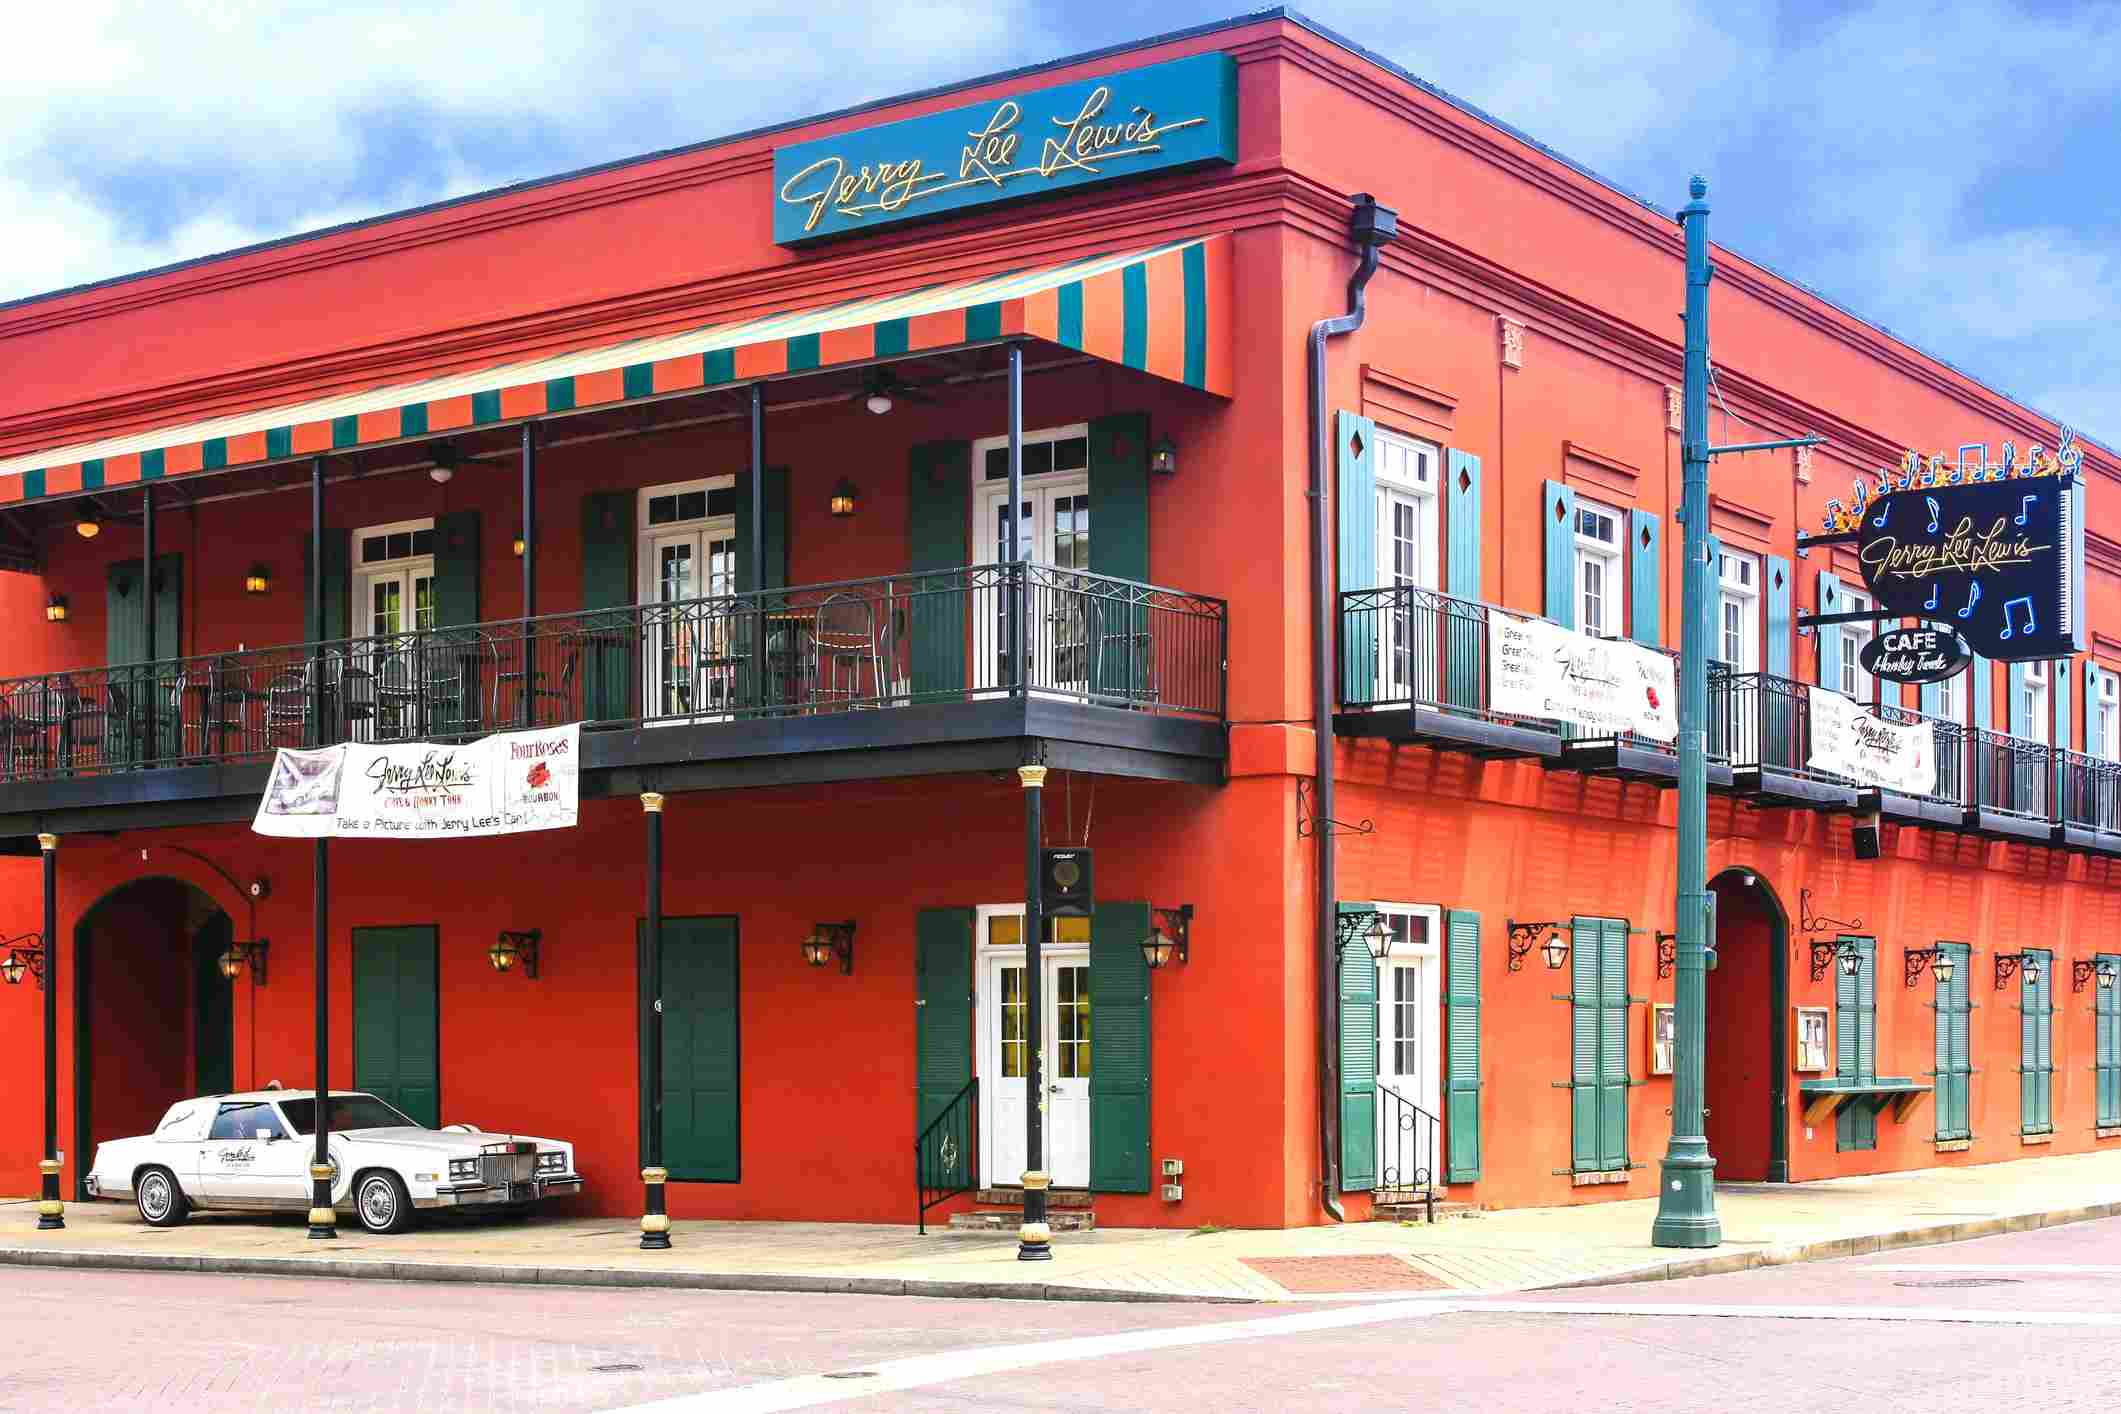 Jerry Lee Lewis Cafe and Honky Tonk club on Beale Street in Memphis, Tennessee